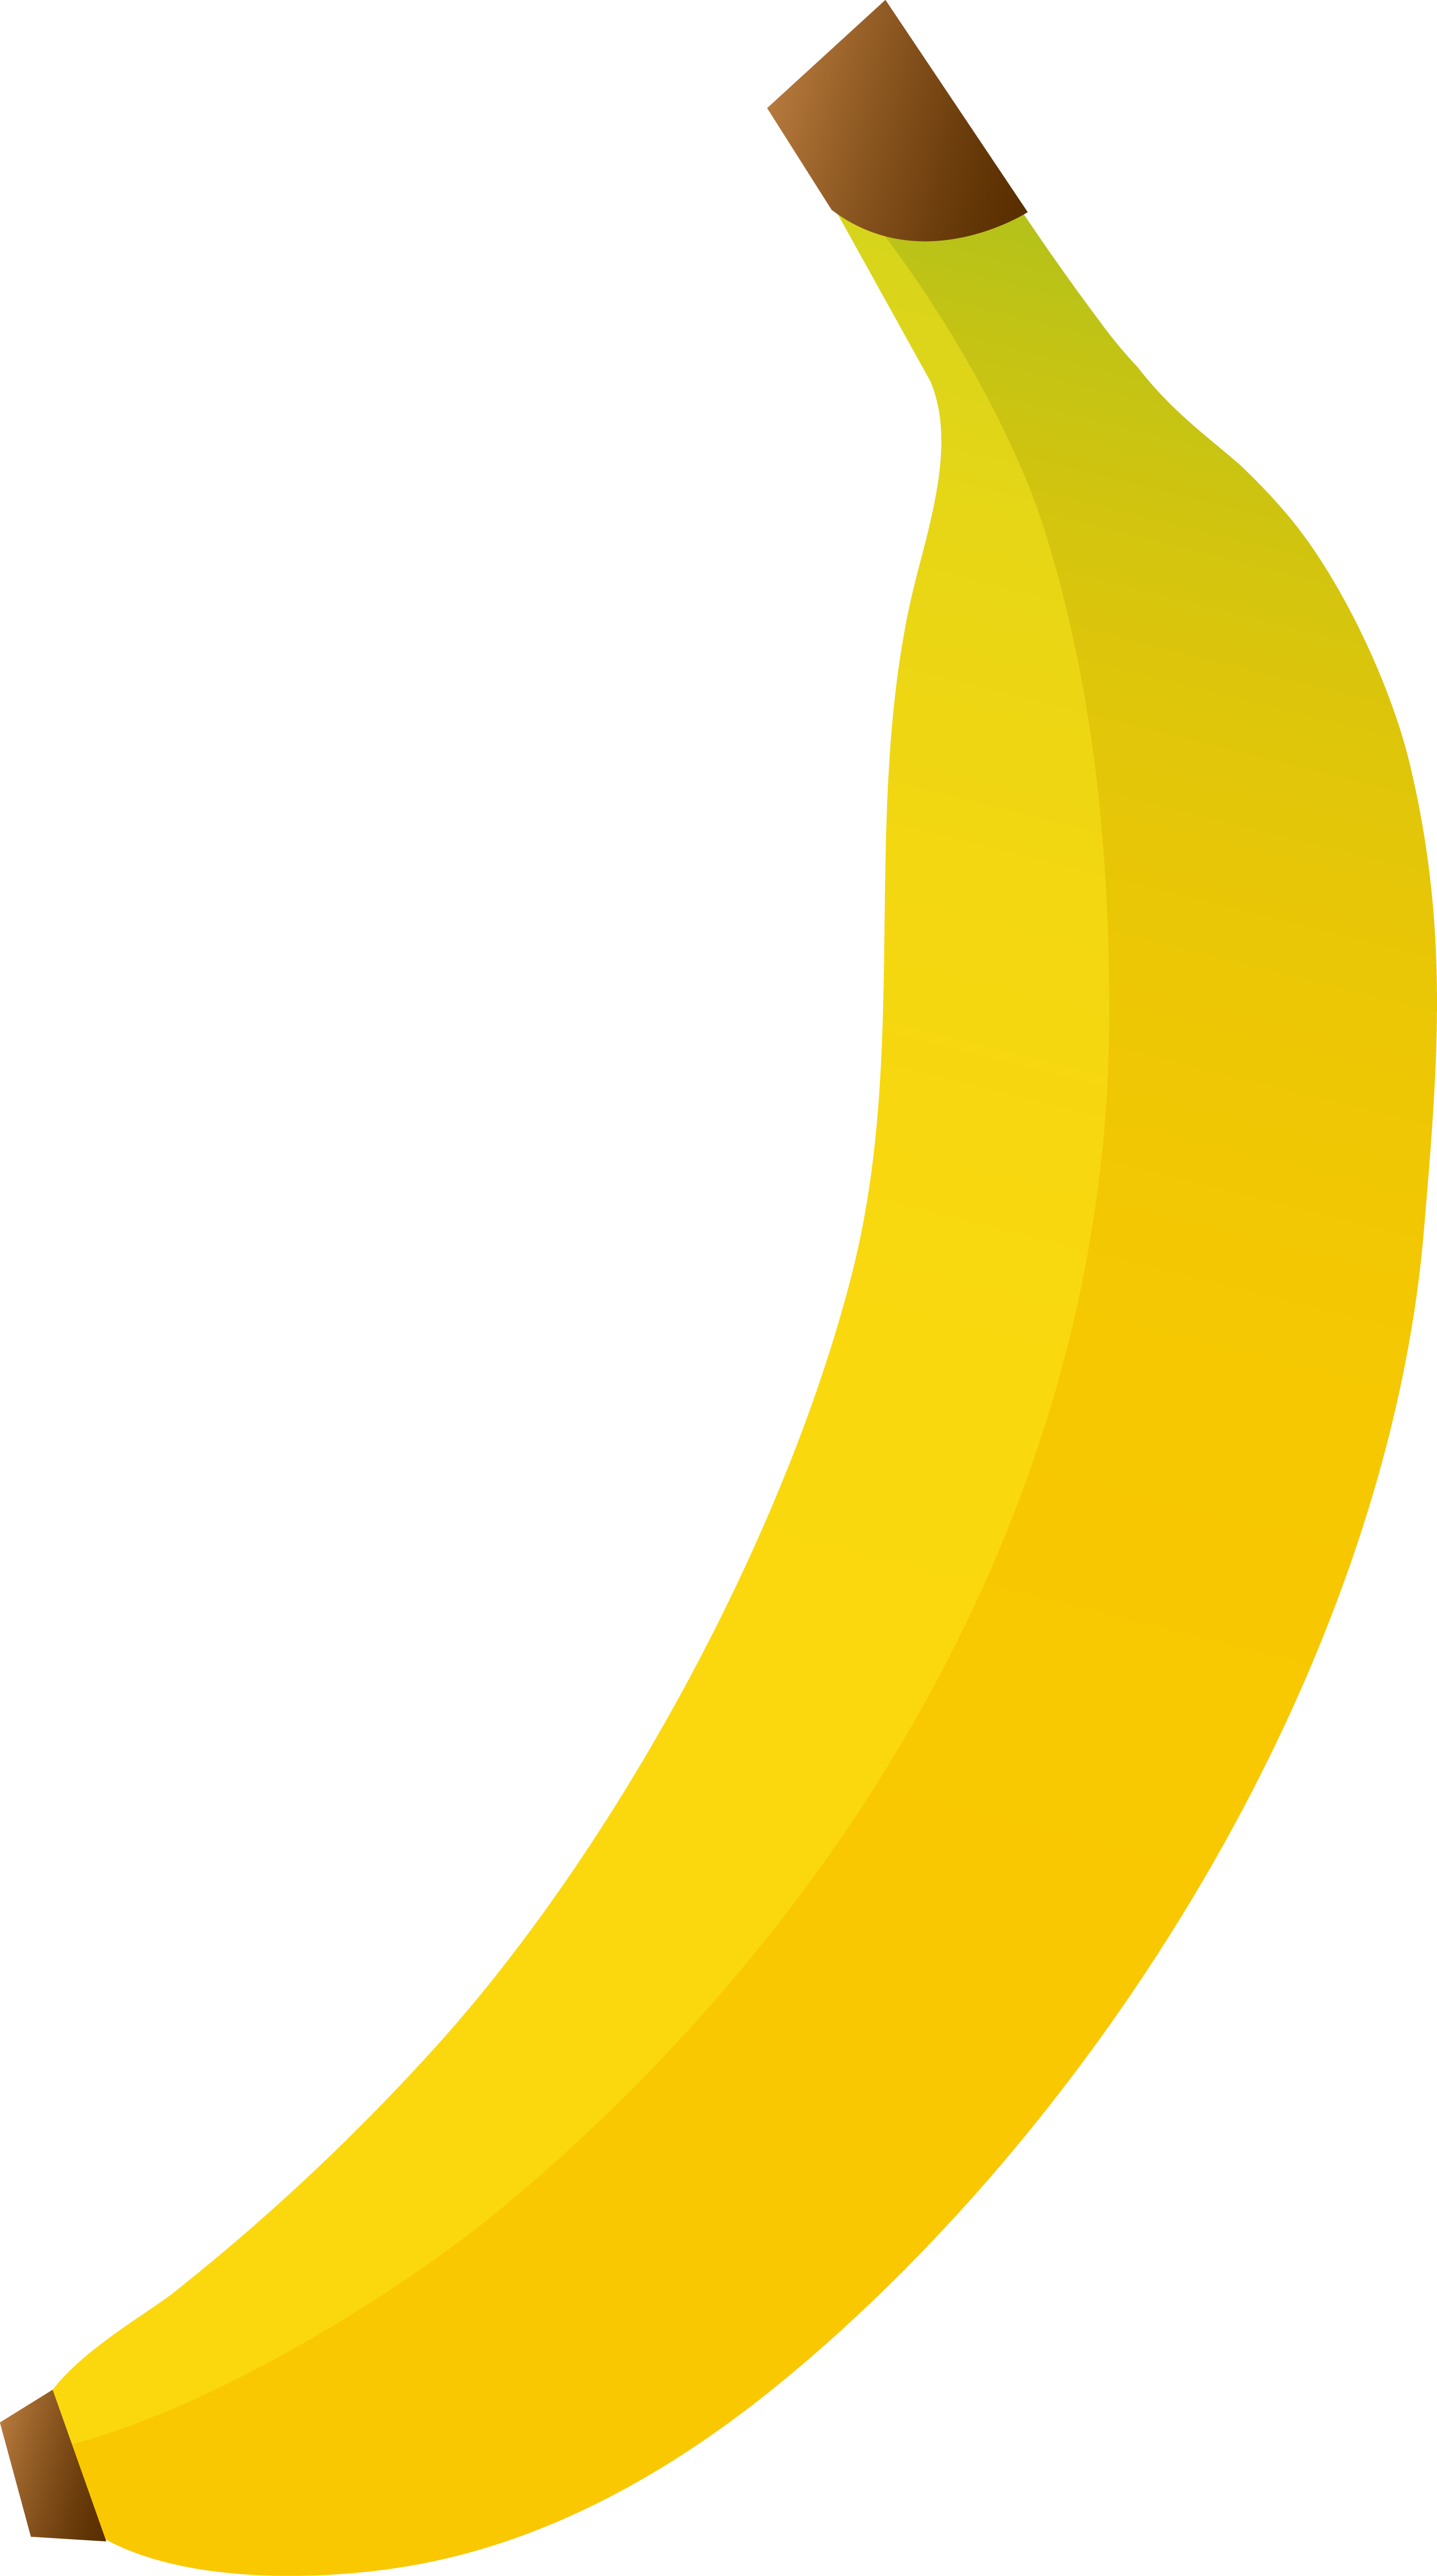 Bananas png free. Banana image picture downloads